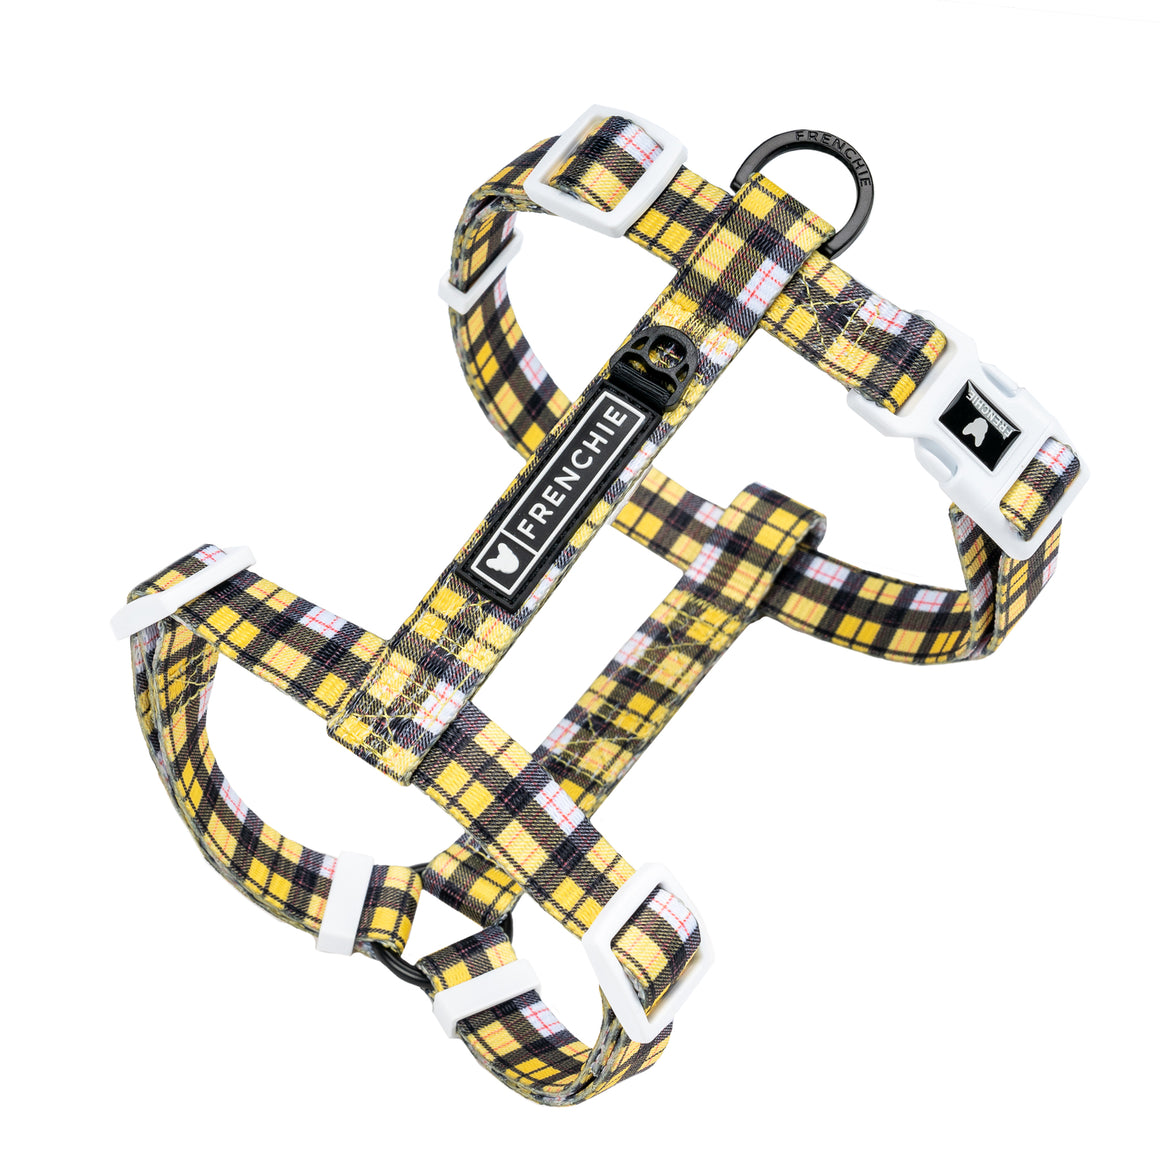 Frenchie Strap Harness - Get A Clue